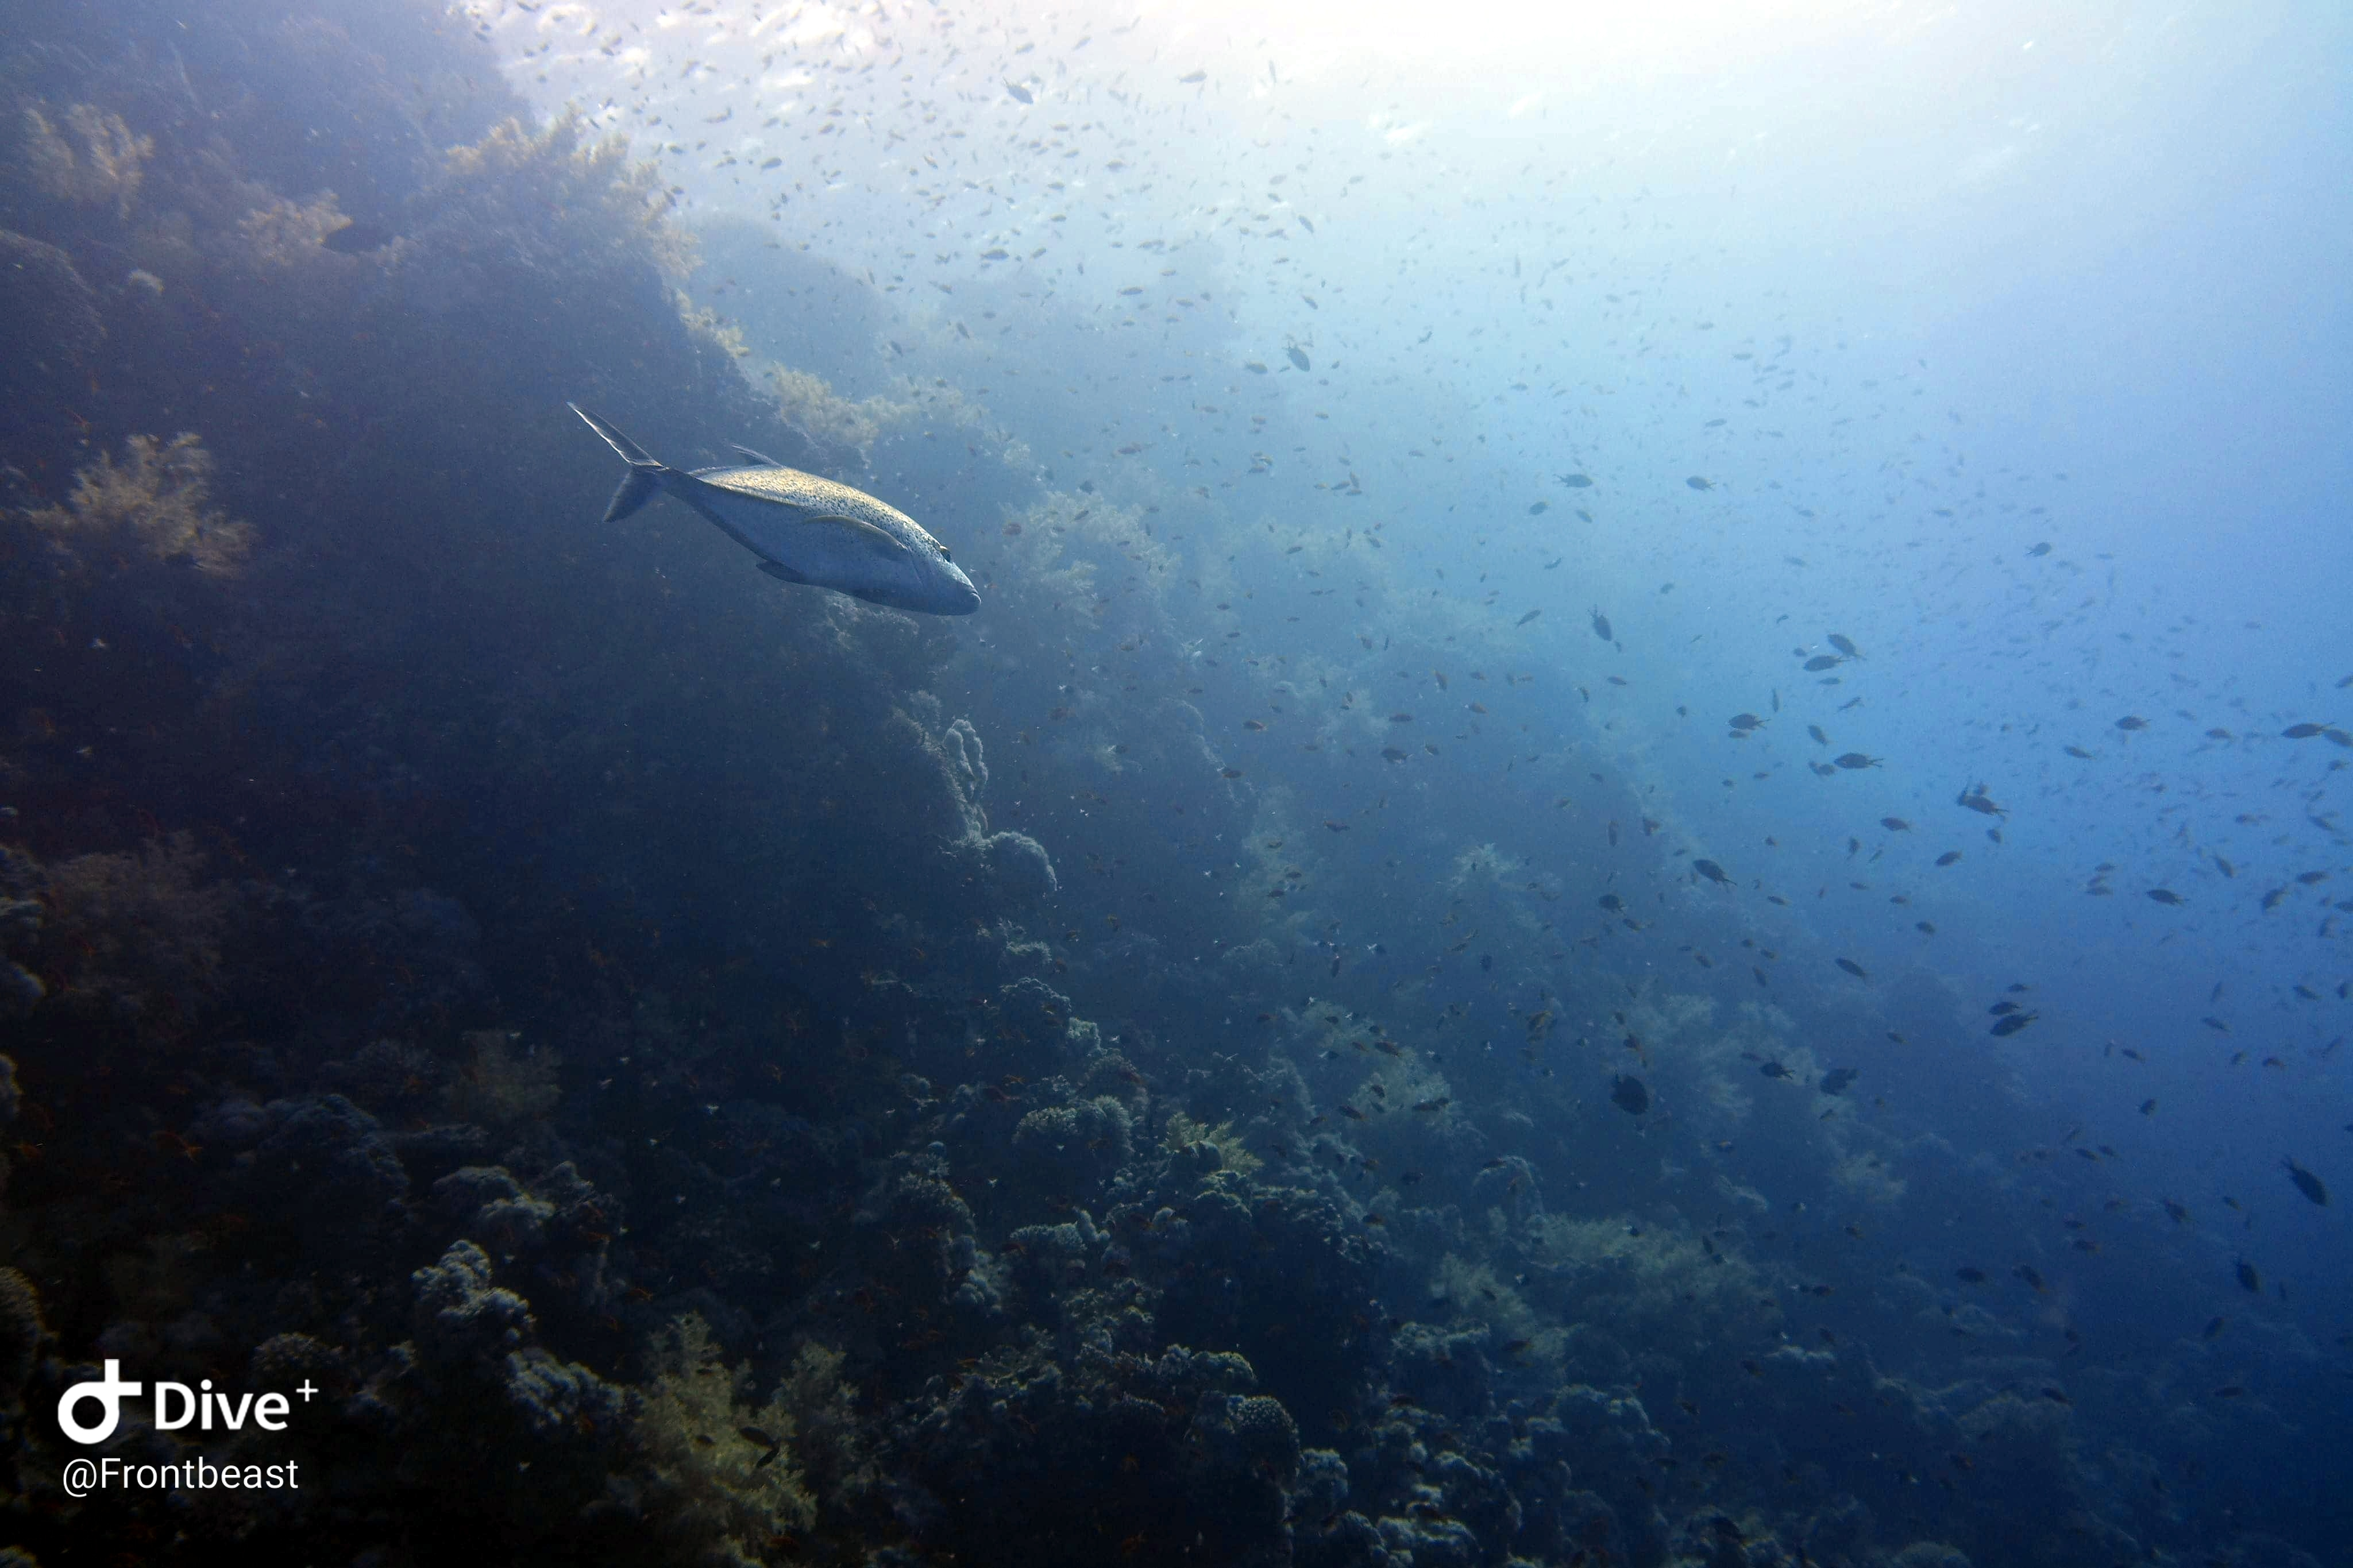 Trevally passing by